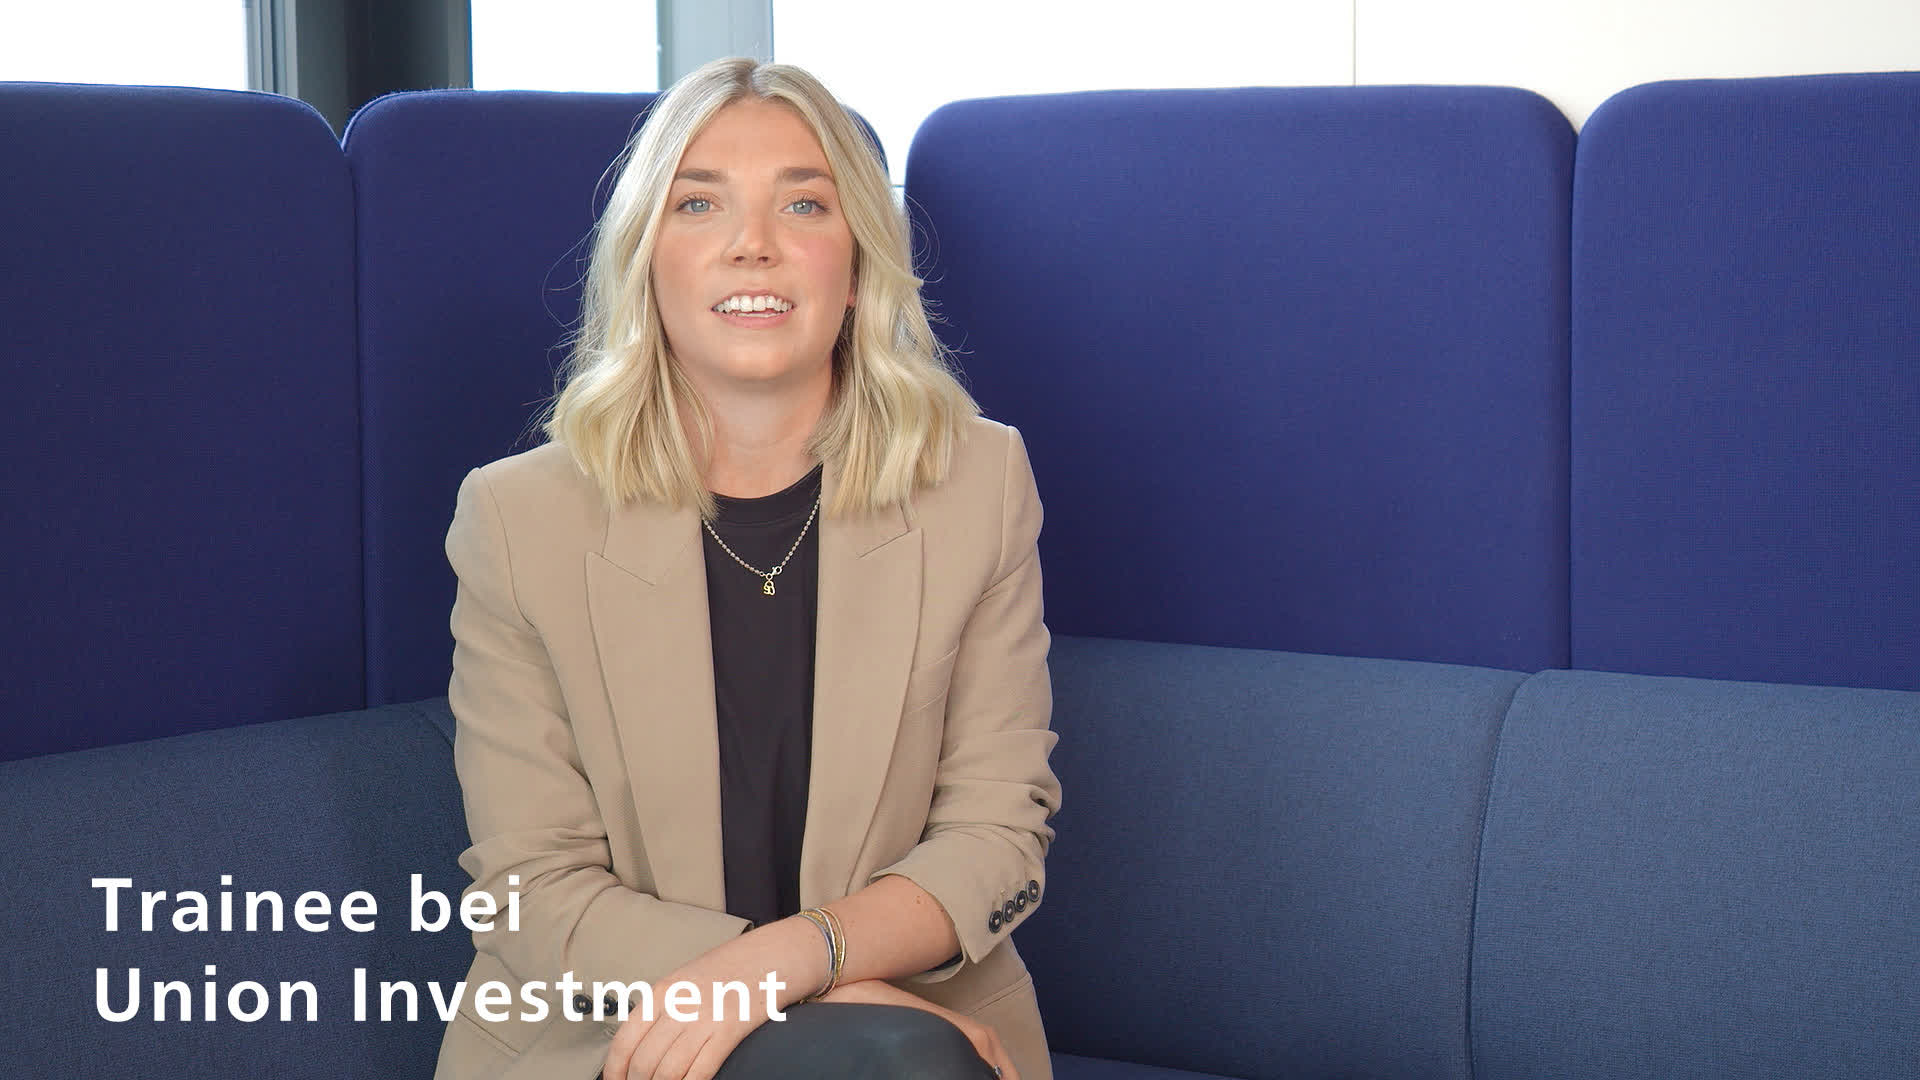 Helena Irmscher, Trainee bei Union Investment